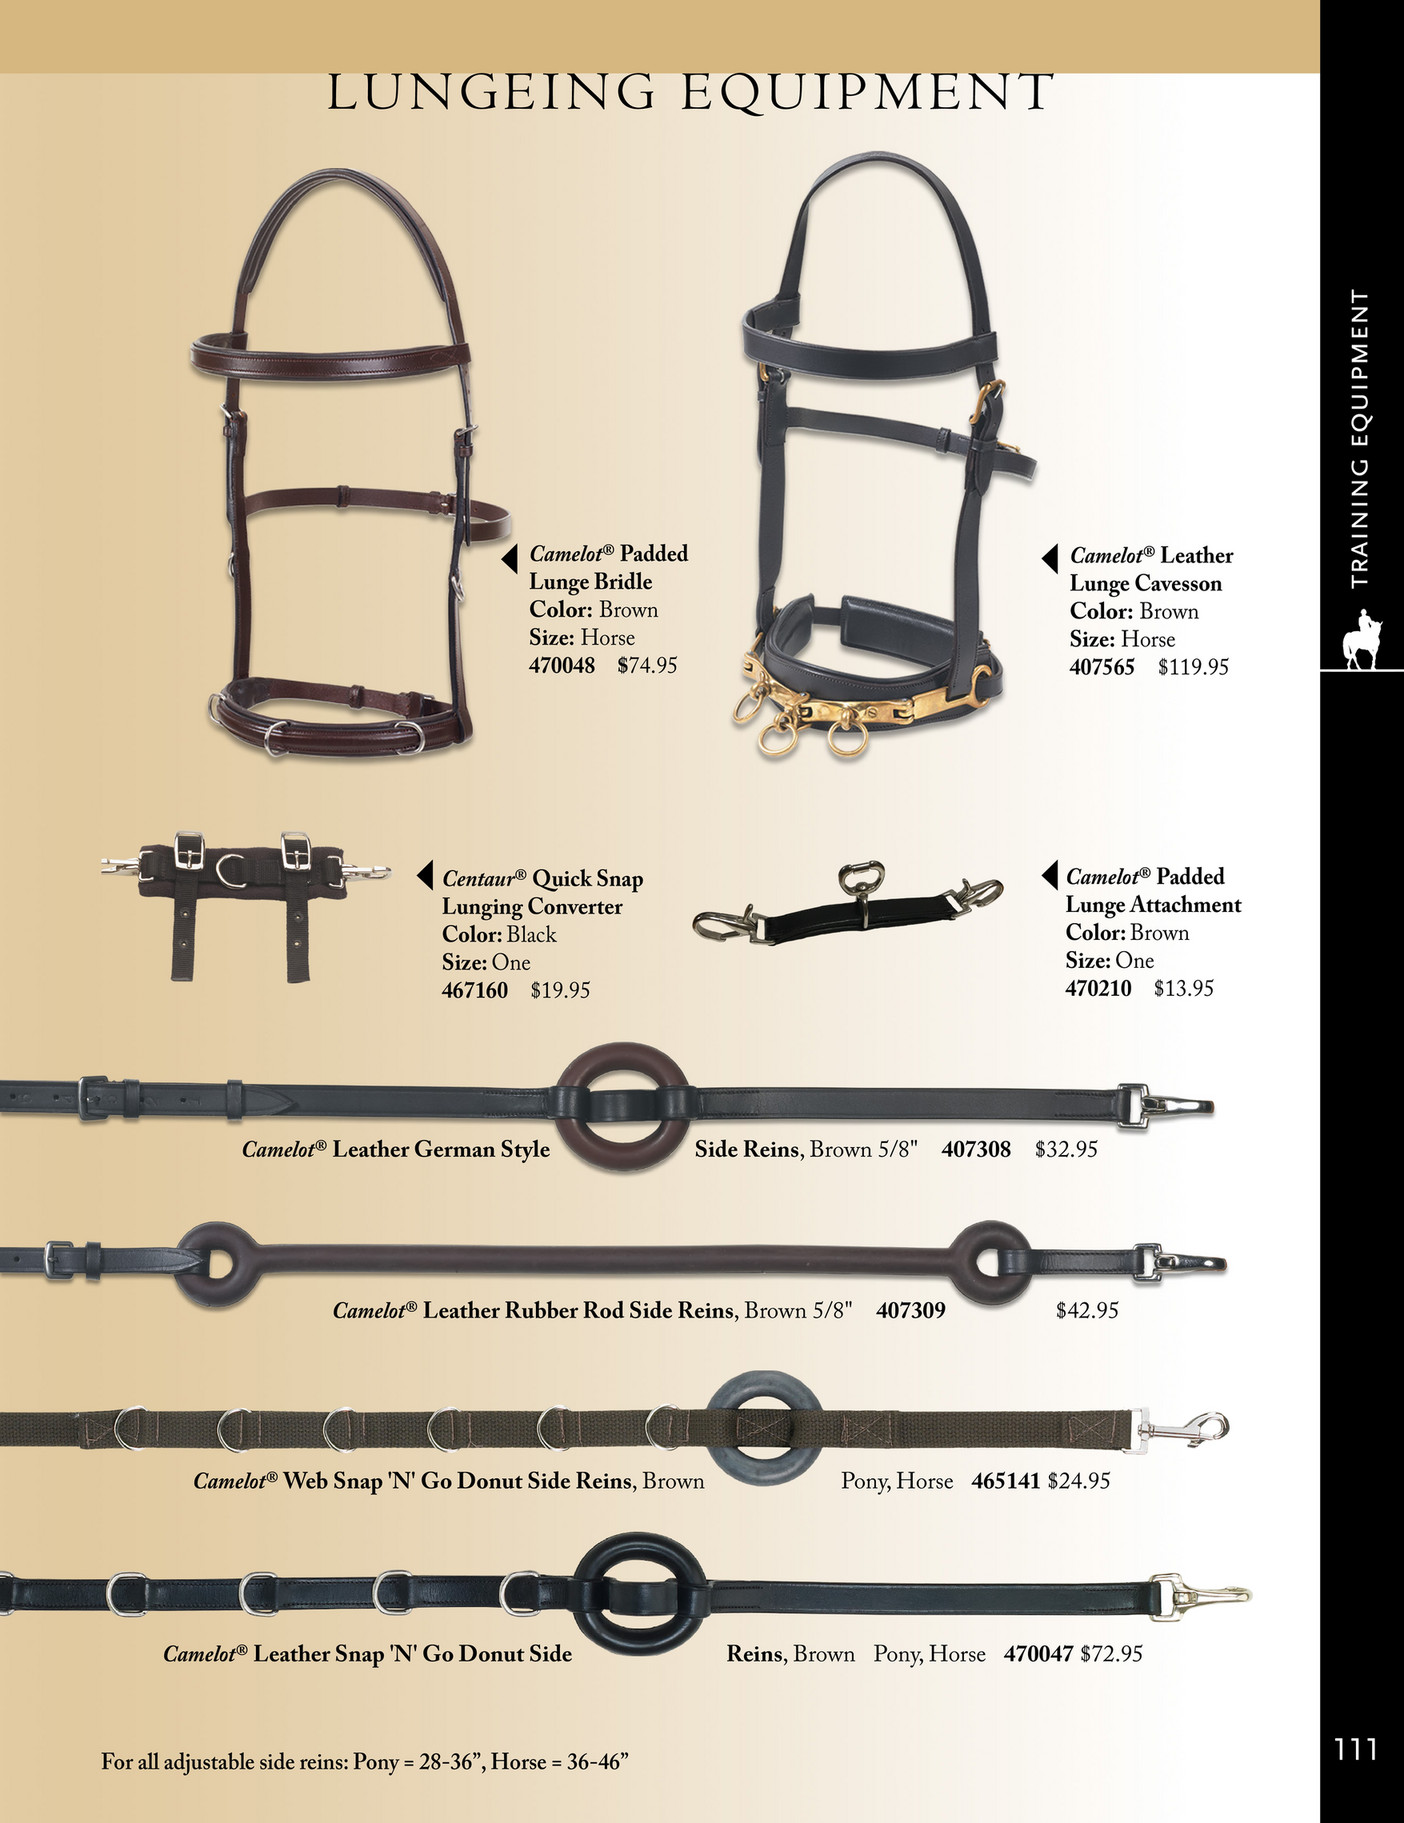 5//8 Brown Camelot German-Style Side Rein